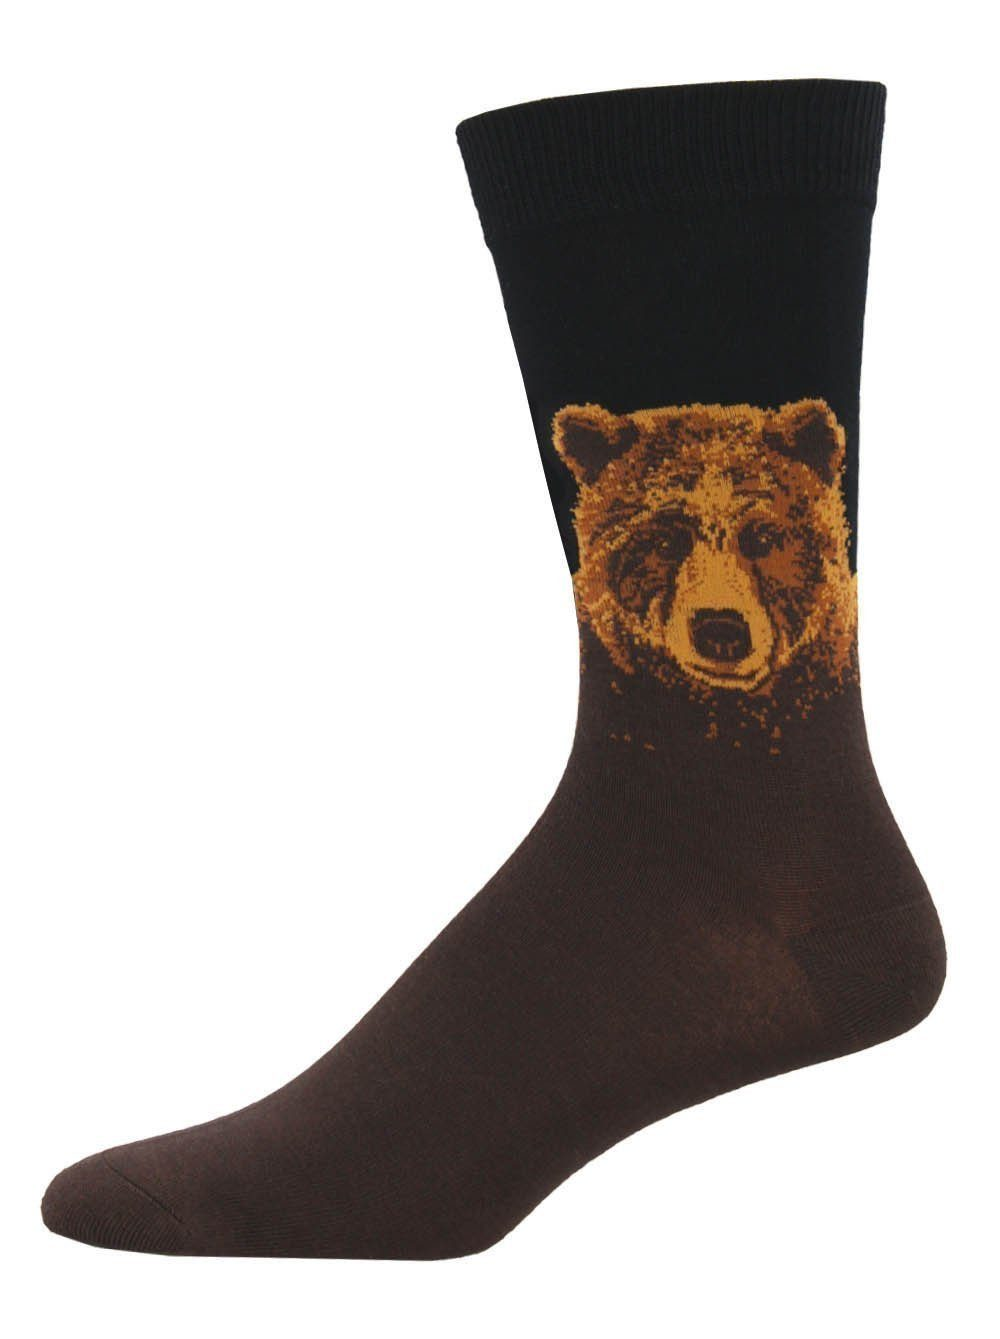 Socksmith - Bamboo Grizzly Crew Socks | Men's - Knock Your Socks Off